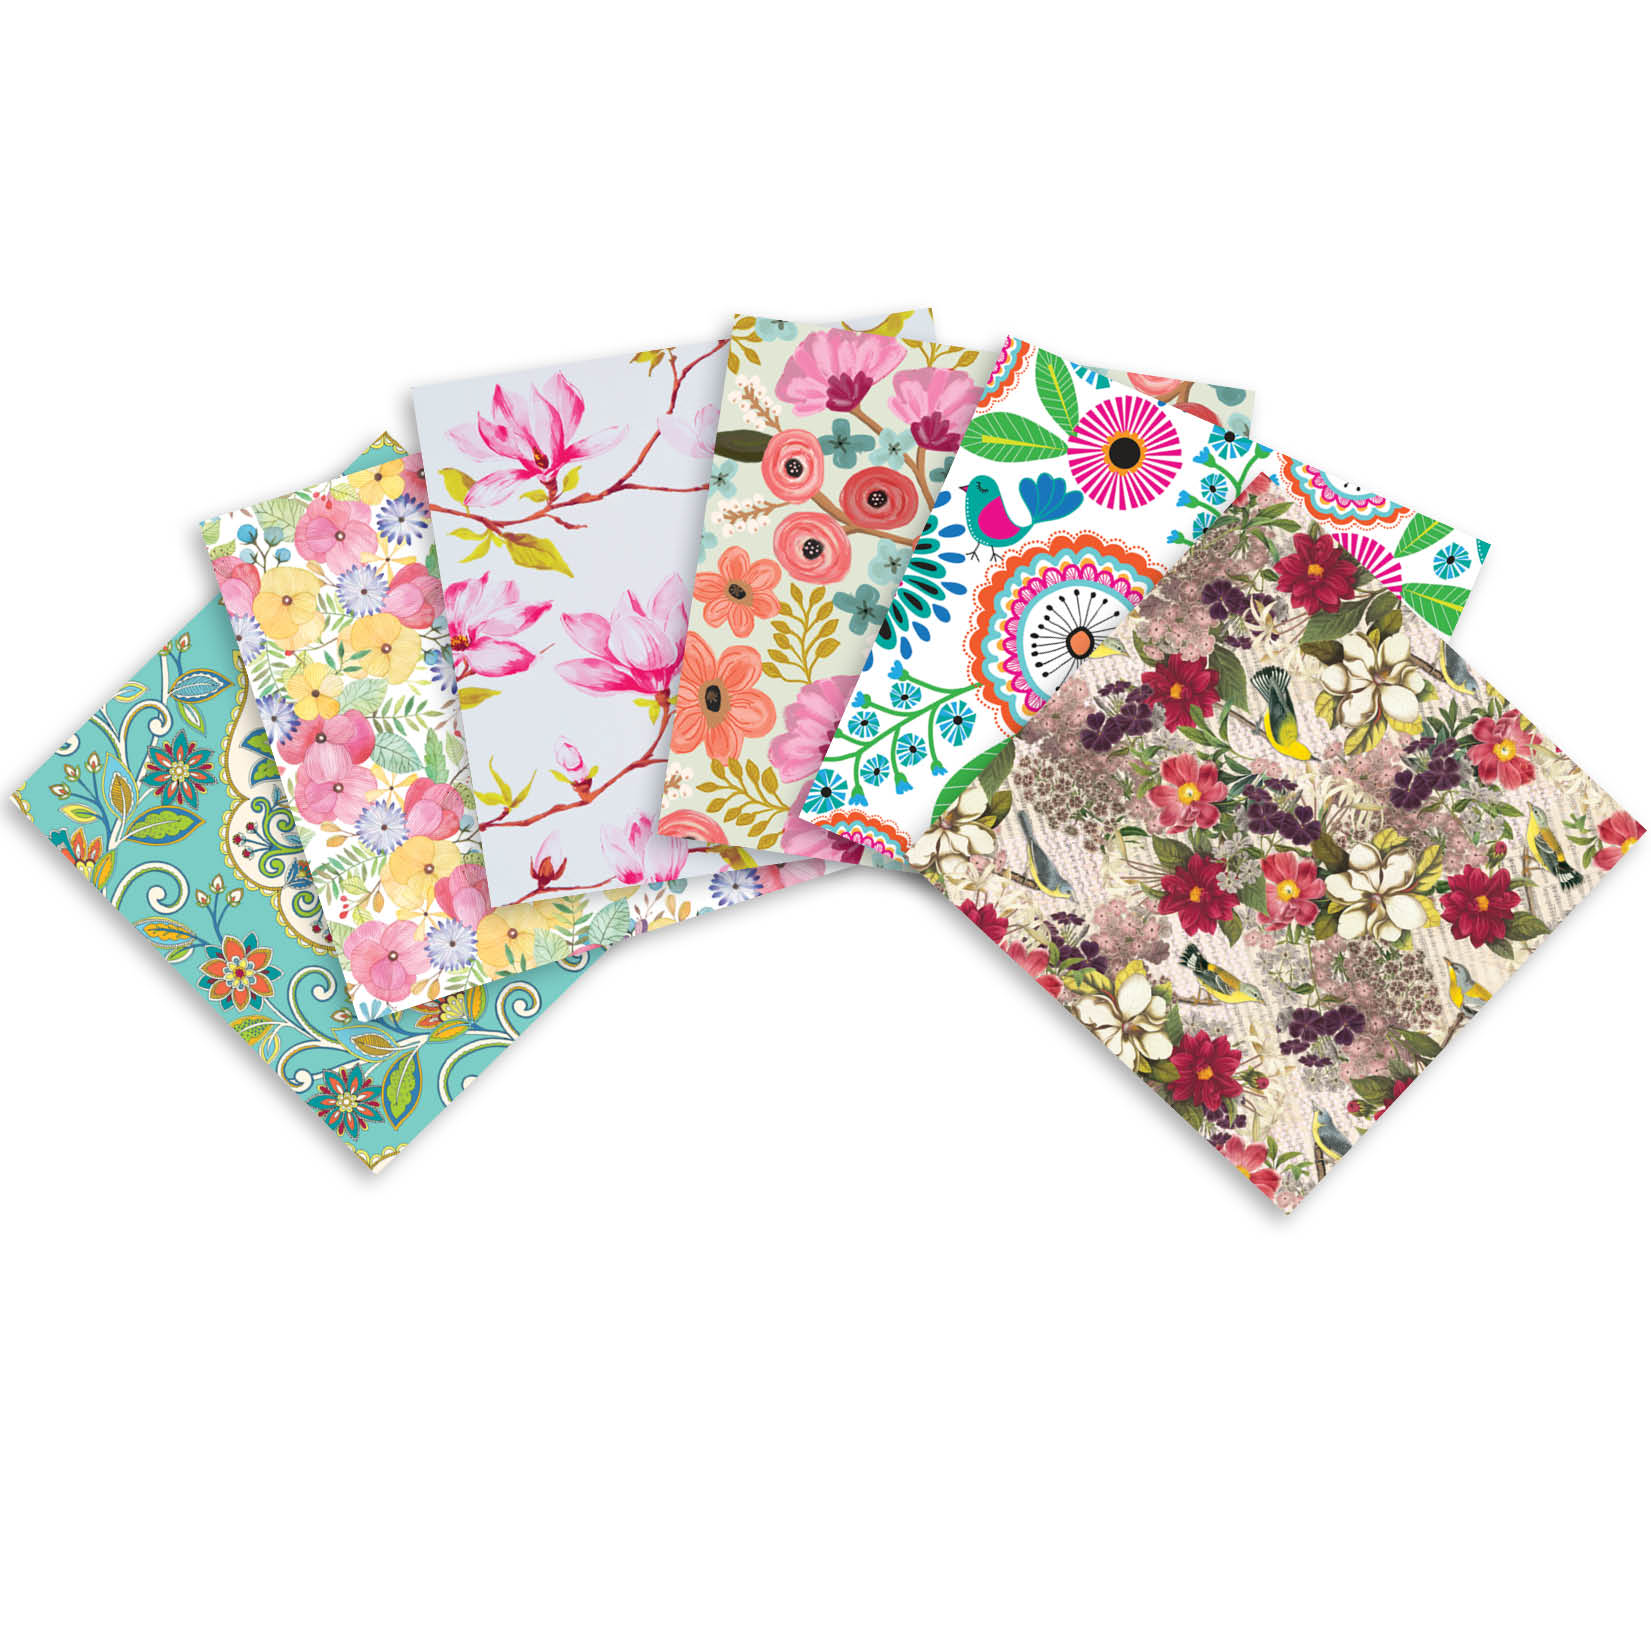 Jillson & Roberts Printed Gift Tissue Assortment, Floral Designs (24 Sheets)